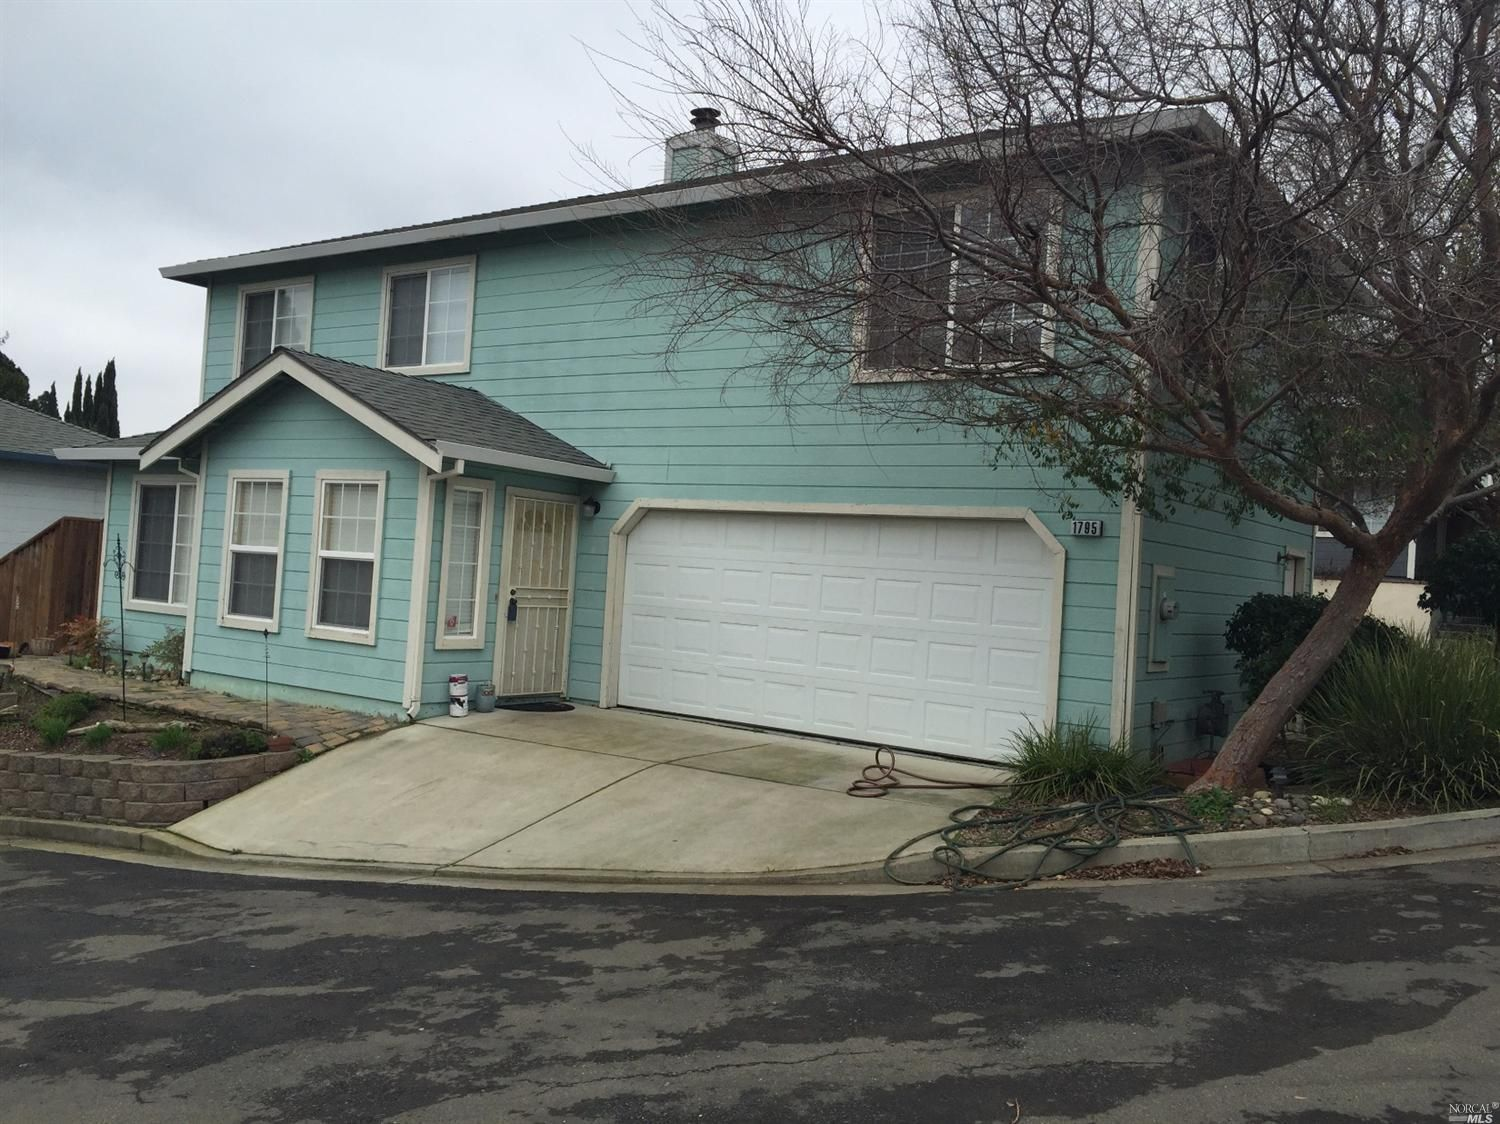 $564900 - 1795 Clos Duvall Ct Benicia CA 94510 Built in 2002 this modern home has 4 bedrooms 2.5 baths and 1741 sq. ft. of living space and features designer paint recessed lighting dual pane windows granite countertops and beautiful flooring throughout. This home is very low maintenance very clean and move-in ready.  Walking distance to downtown and conveniently located to 780. Come see us today! http://bit.ly/1RZoqXb